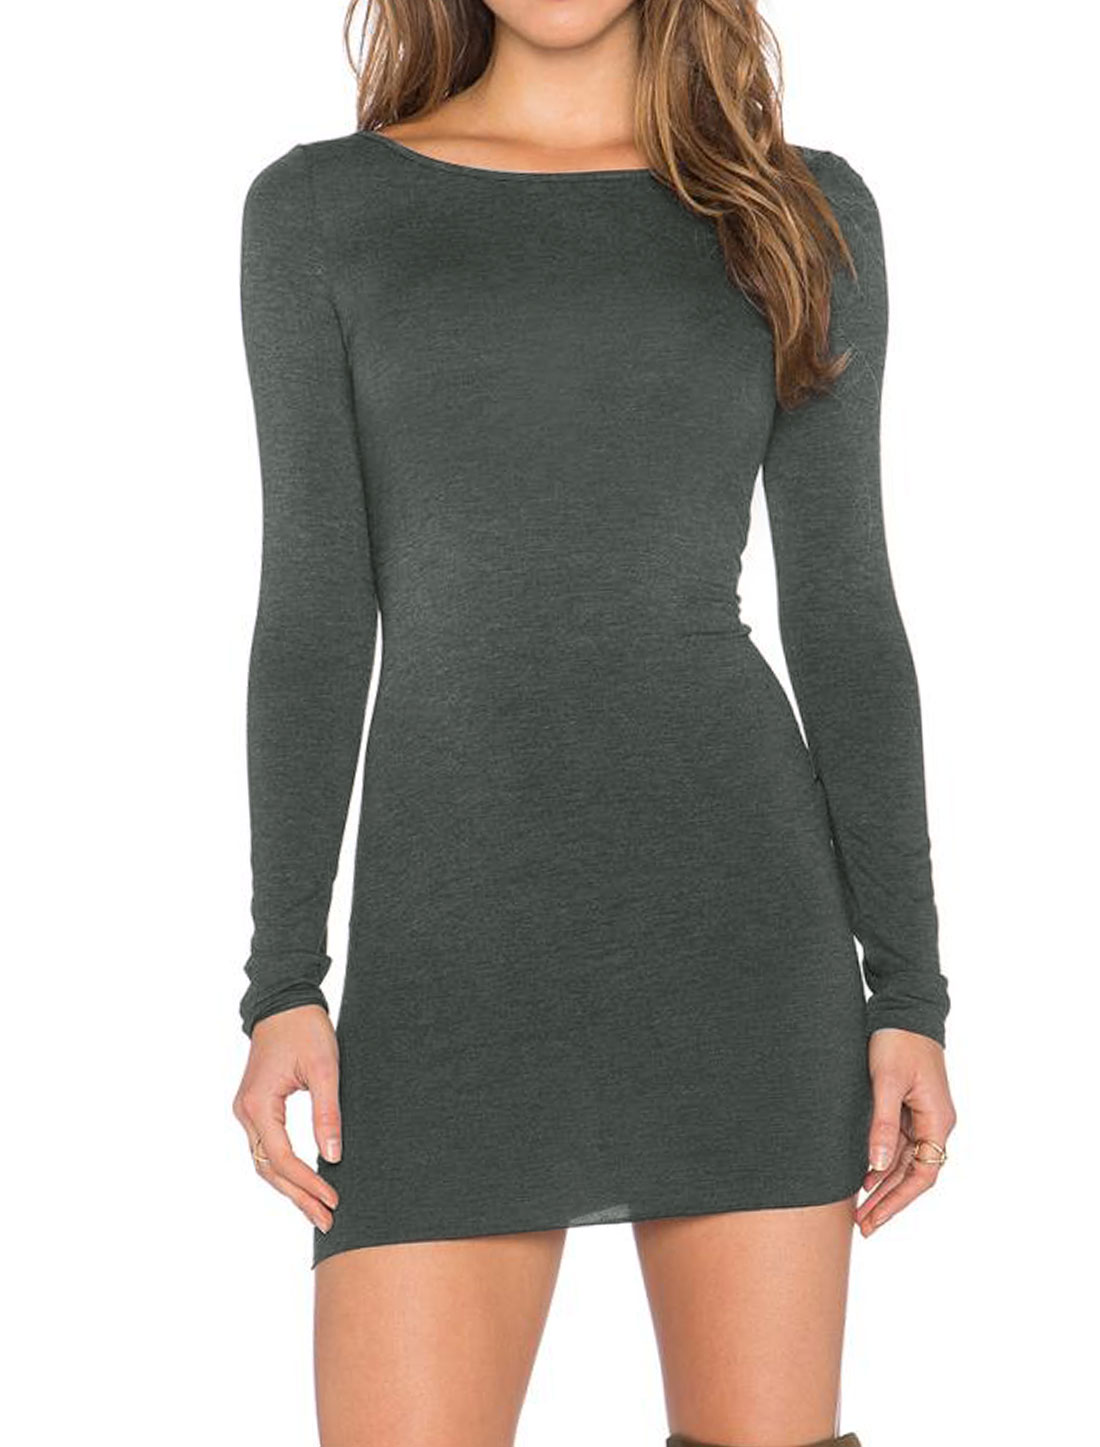 Women Round Neck Long Sleeves Backless Bodycon Dress Gray L